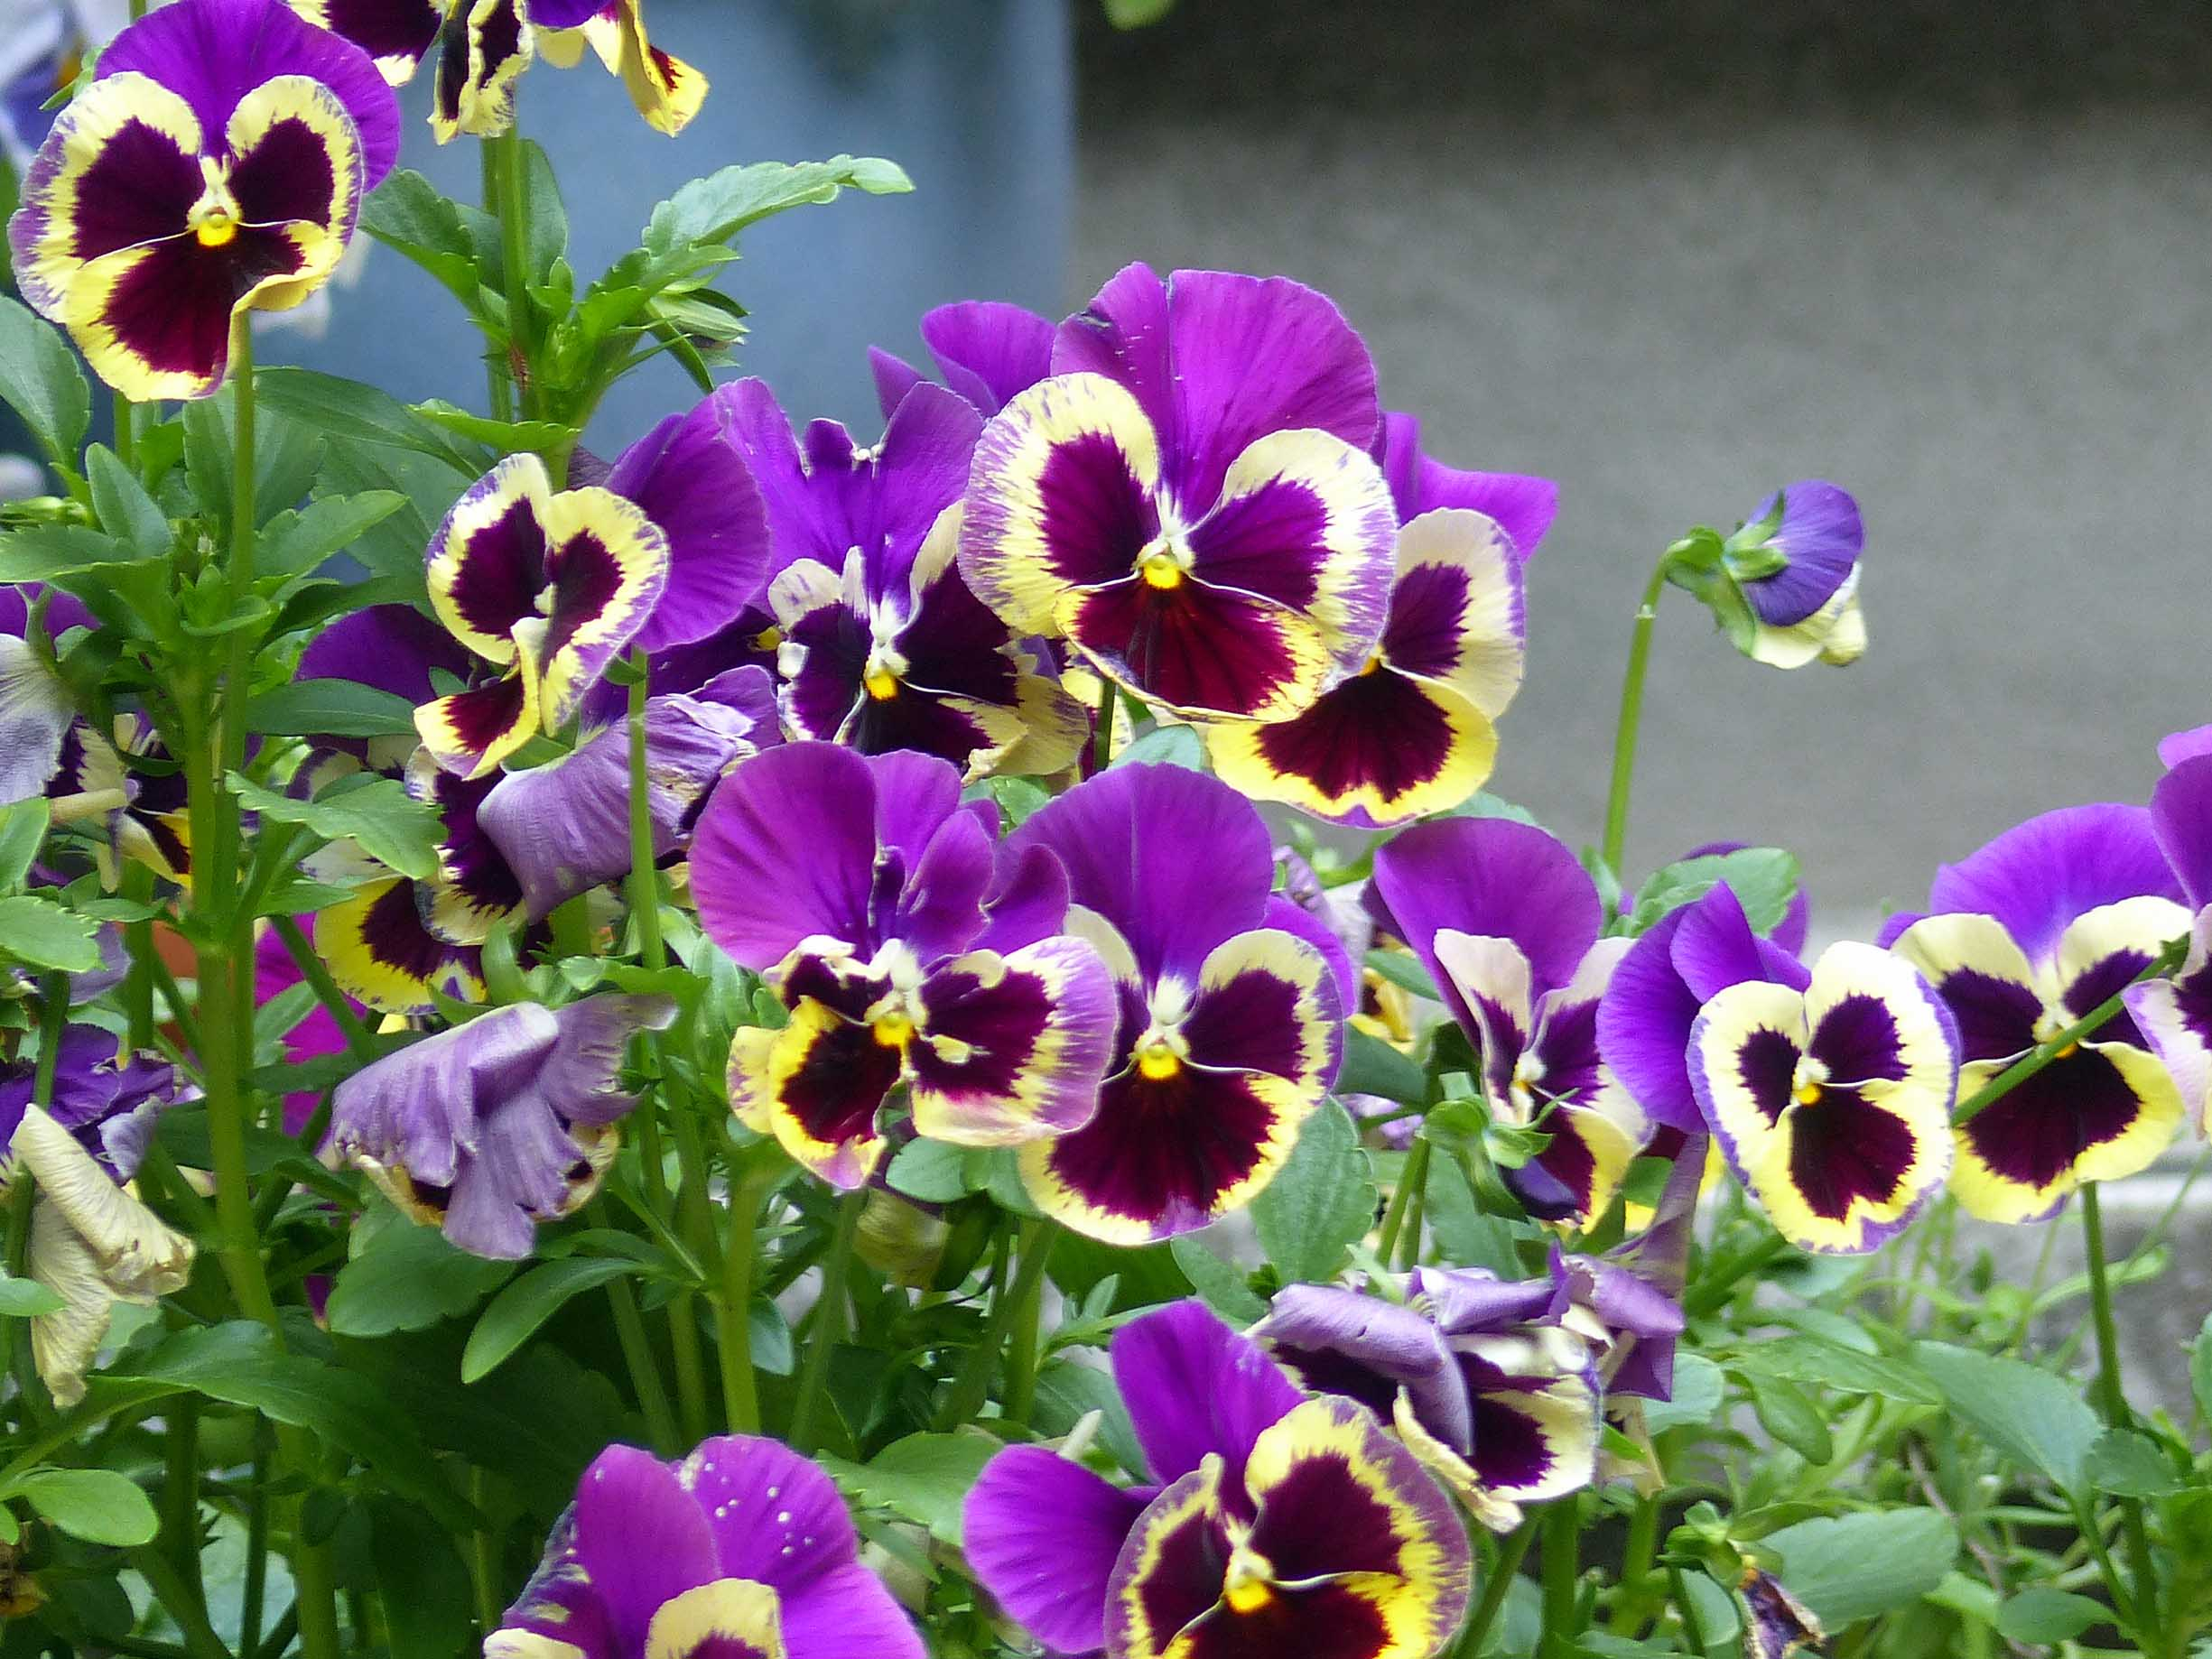 Mauve and yellow pansies